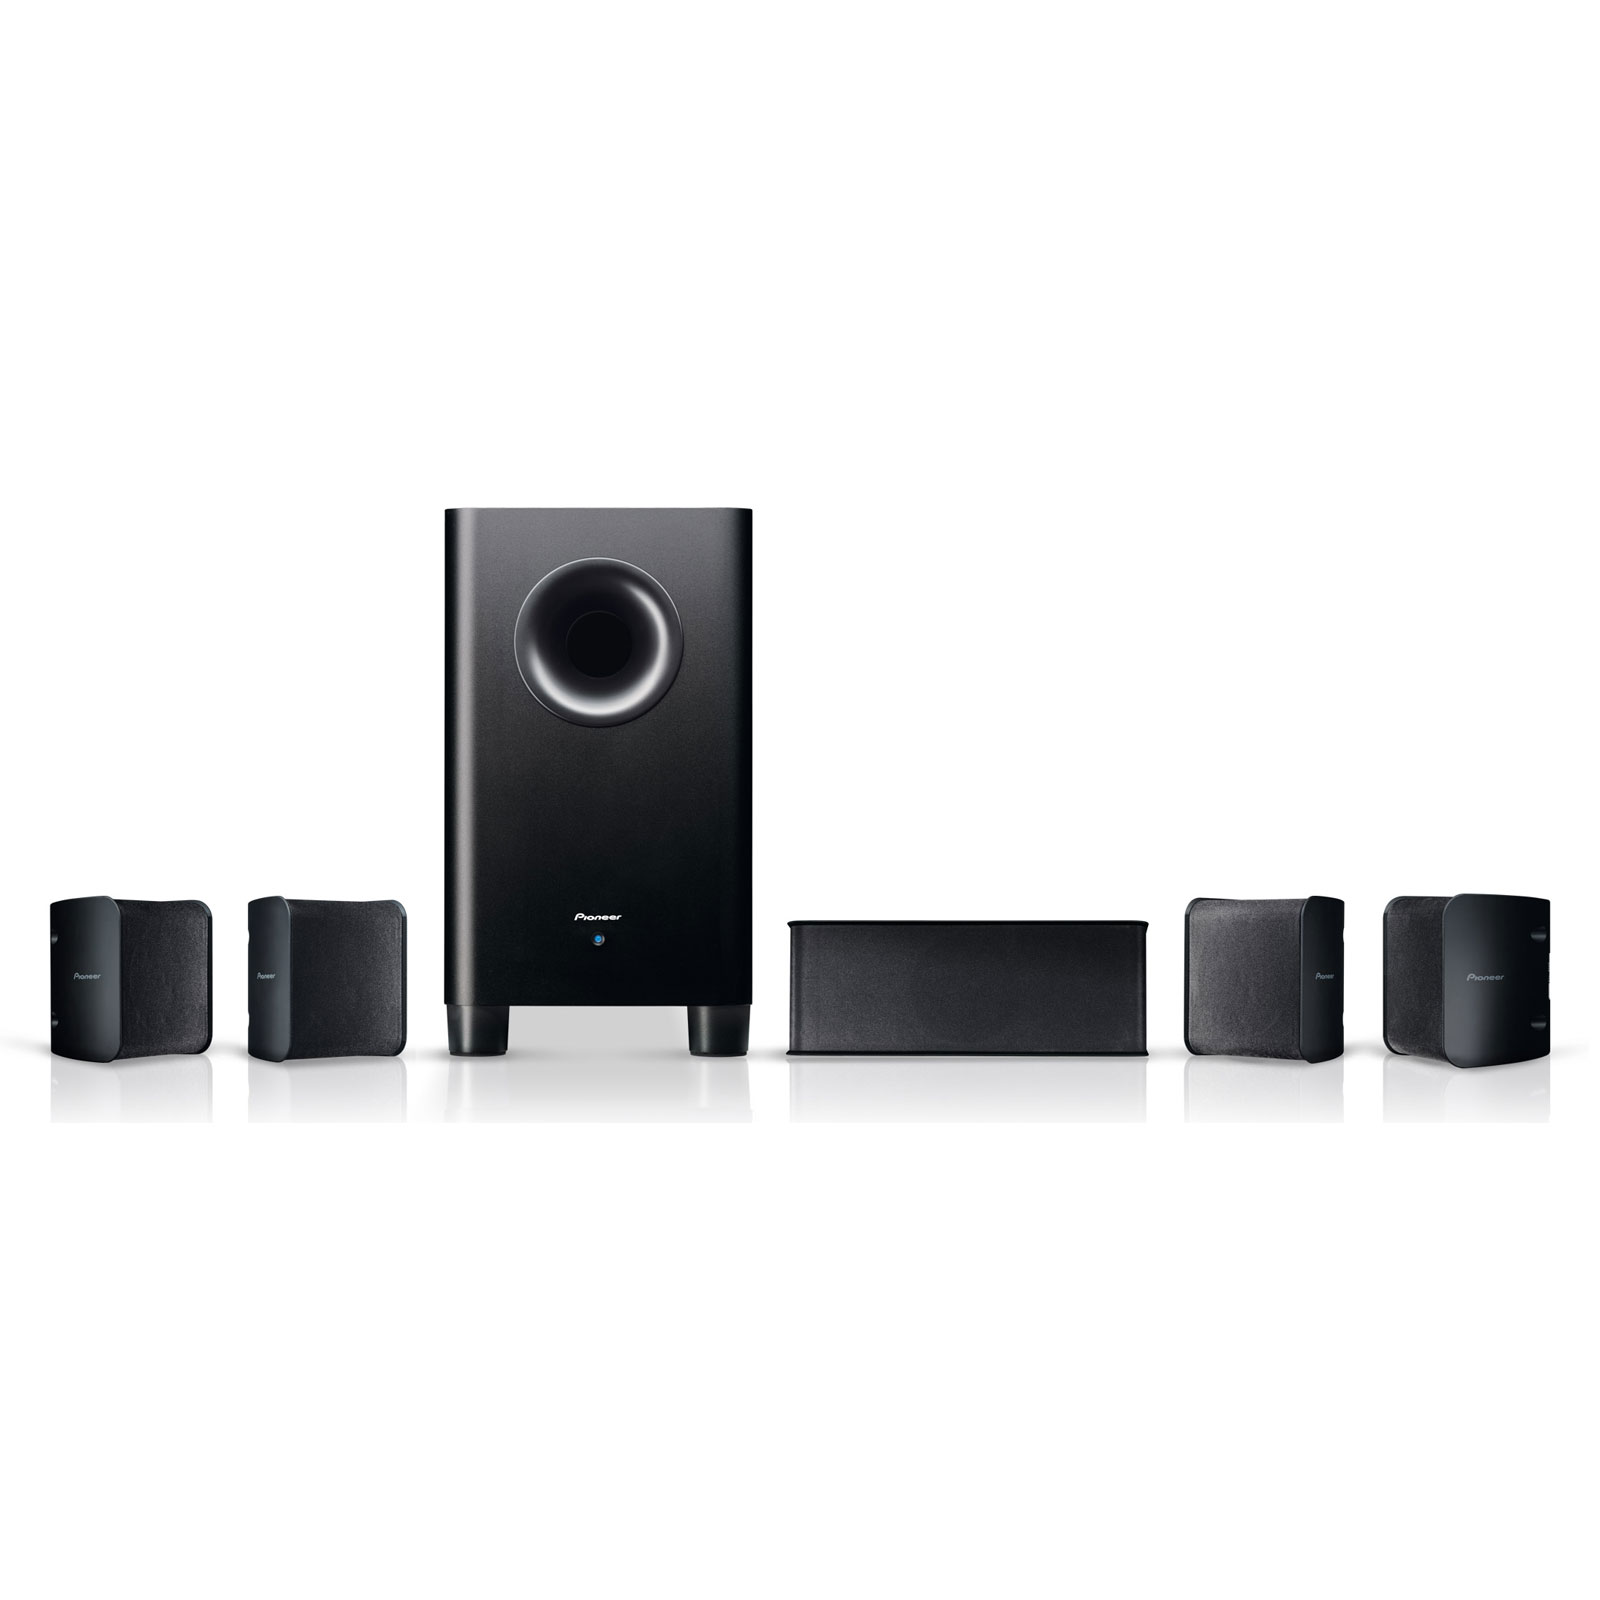 pioneer s hs100 enceintes hifi pioneer sur. Black Bedroom Furniture Sets. Home Design Ideas